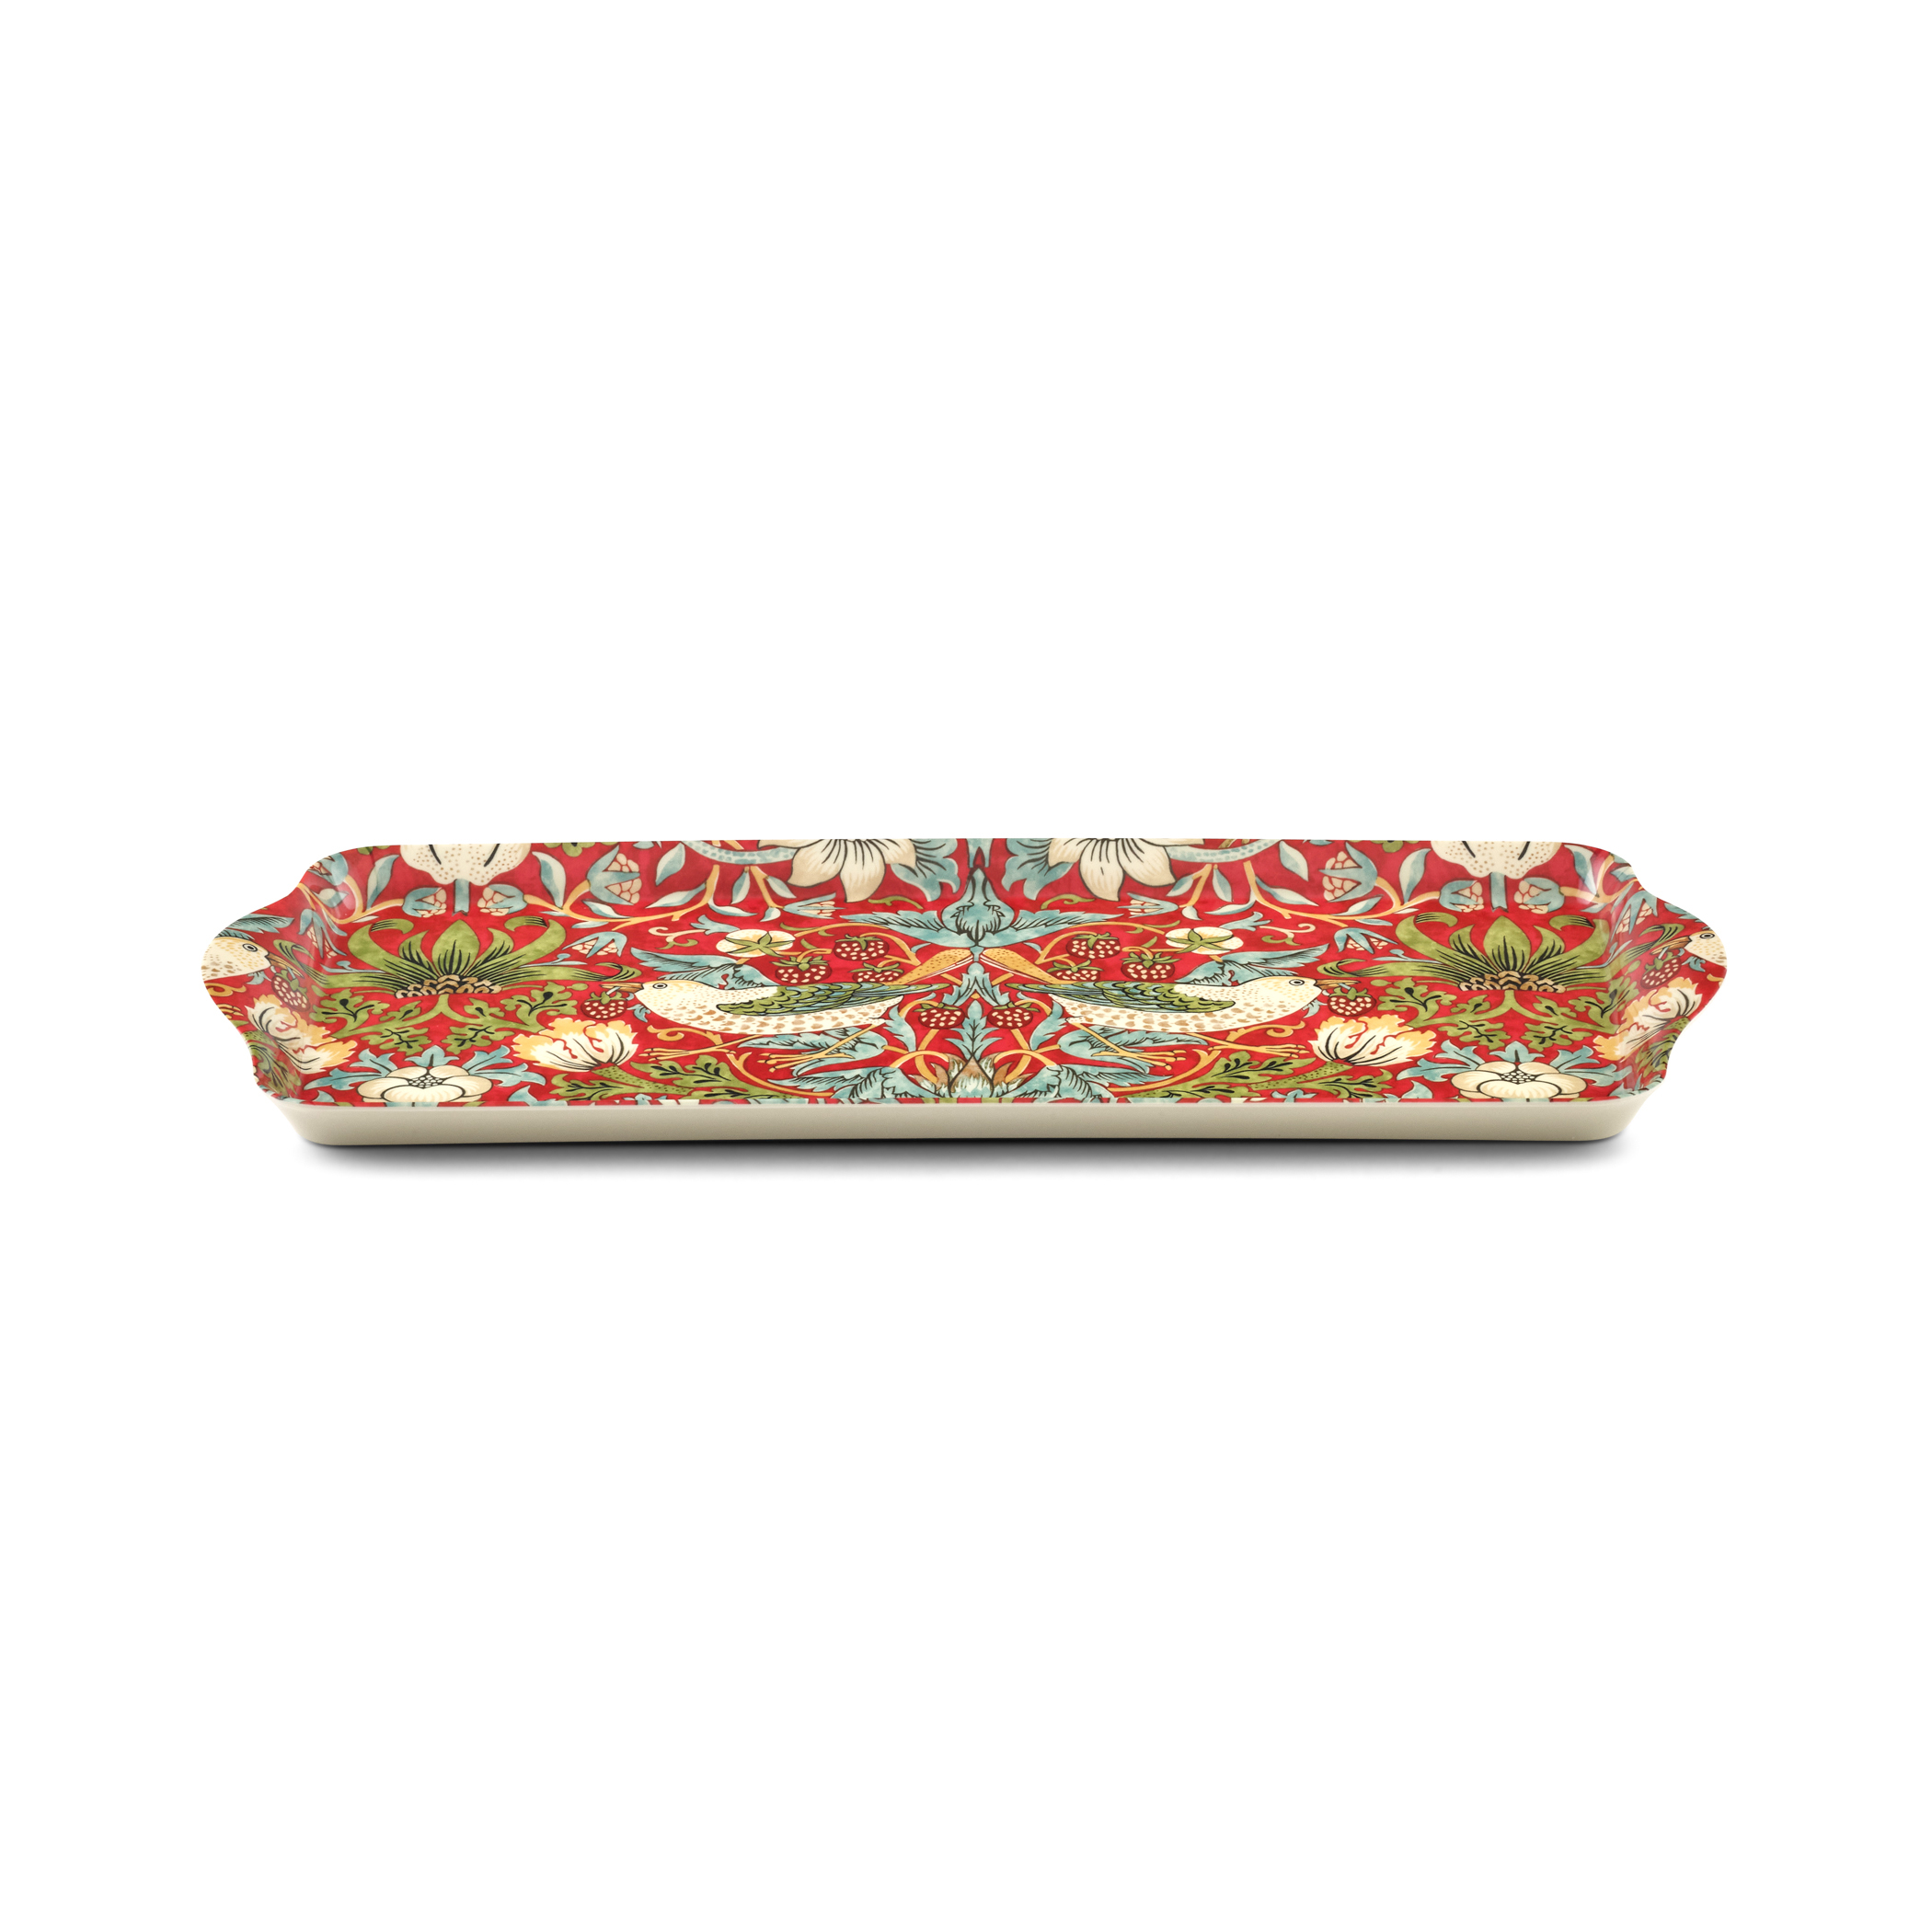 Morris and Co for Pimpernel Strawberry Thief Red Melamine Sandwich Tray image number 1